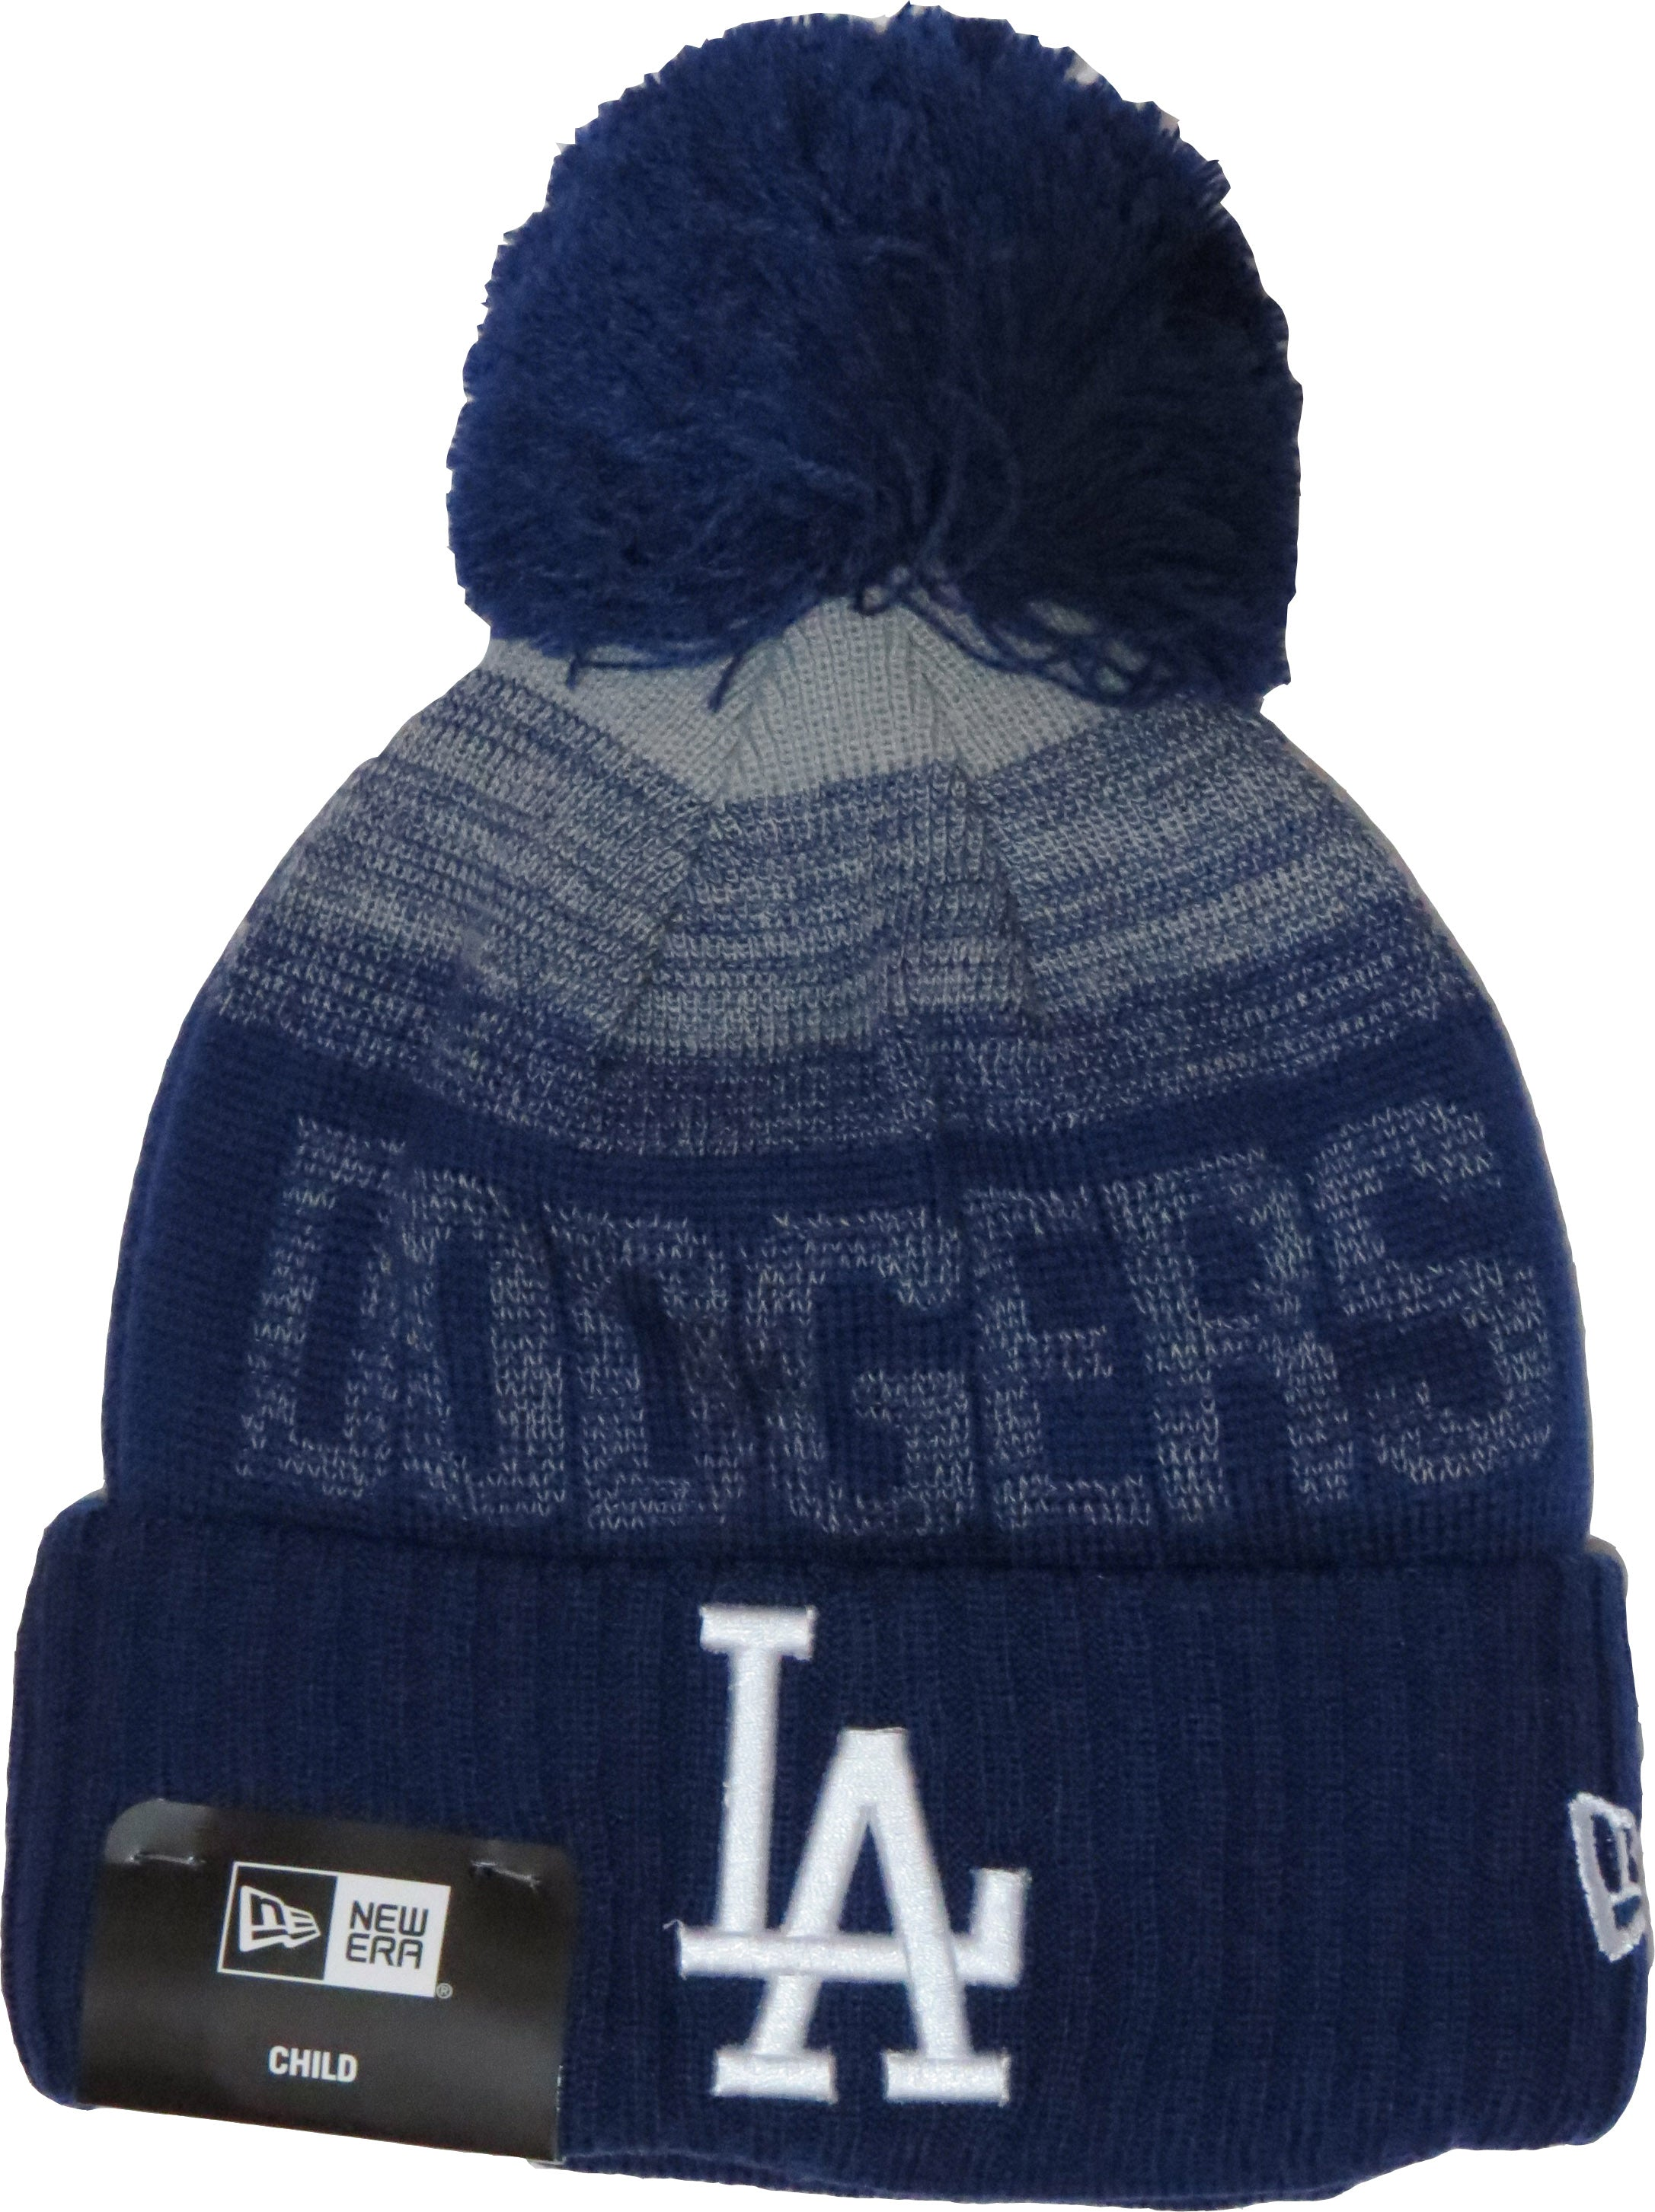 24e5a8100 LA dodgers New Era Kids Sport Knit Bobble Hat (Ages 2 - 10 years)